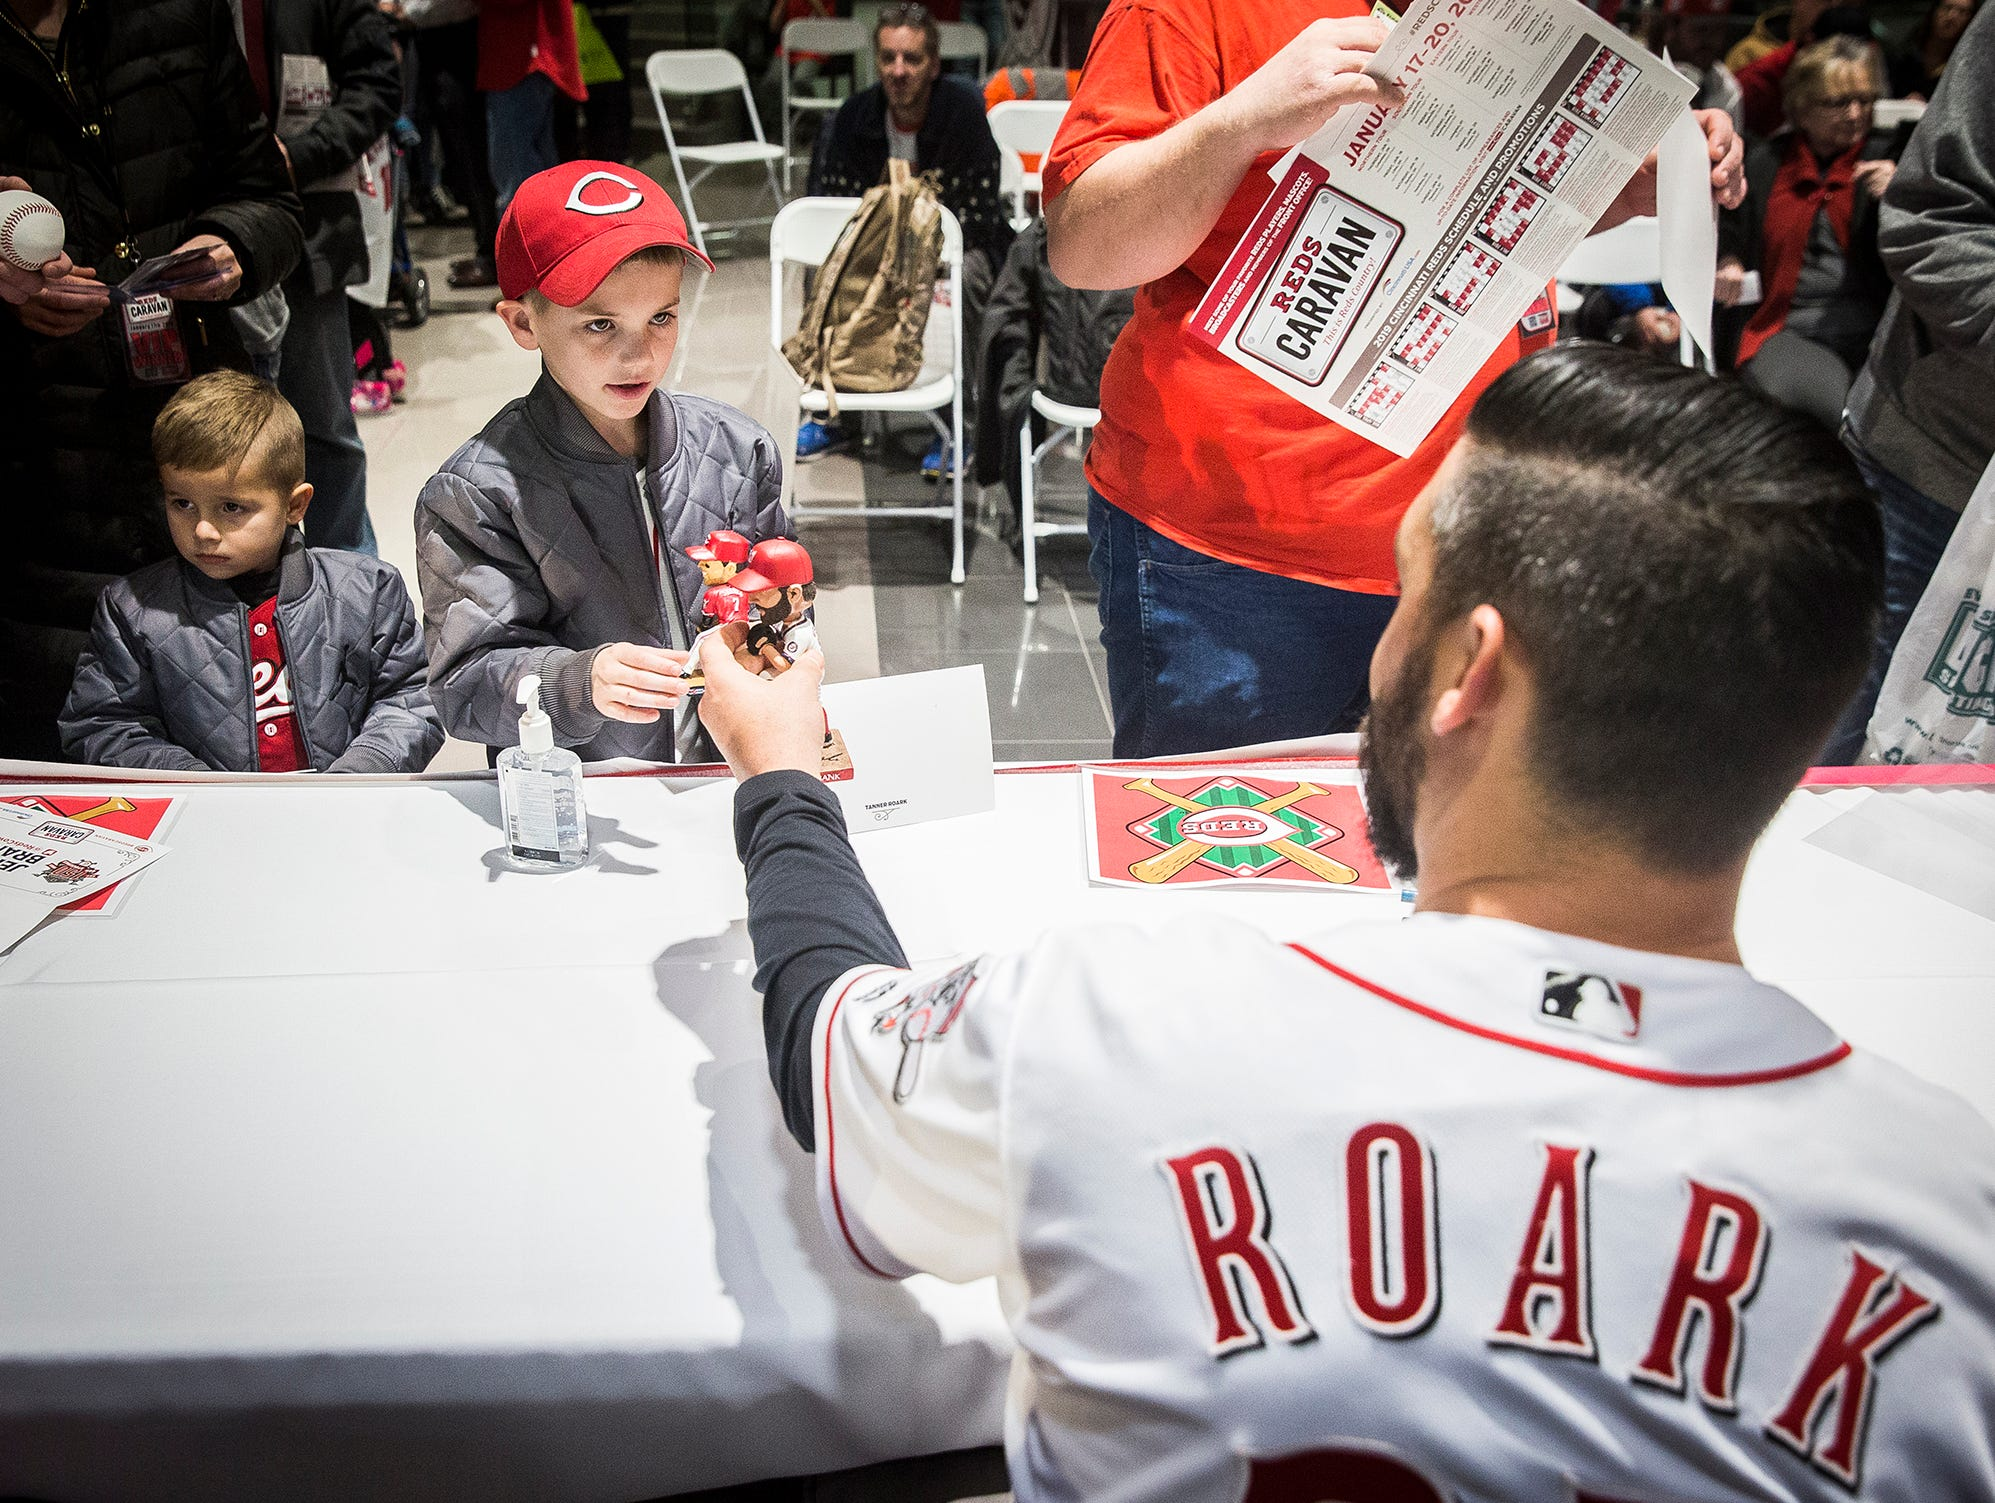 The Reds Caravan returned to Muncie at Stoops Automotive on Clara Lane Thursday evening. Broadcasters Jeff Brantley and Jim Day,  pitcher Tanner Roark, third- baseman Eugenio Suárez,, minor league catcher Tyler Stephenson, President of Baseball Operations Dick Williams, and mascot Rosie Red signed autographs and answered questions during the event.